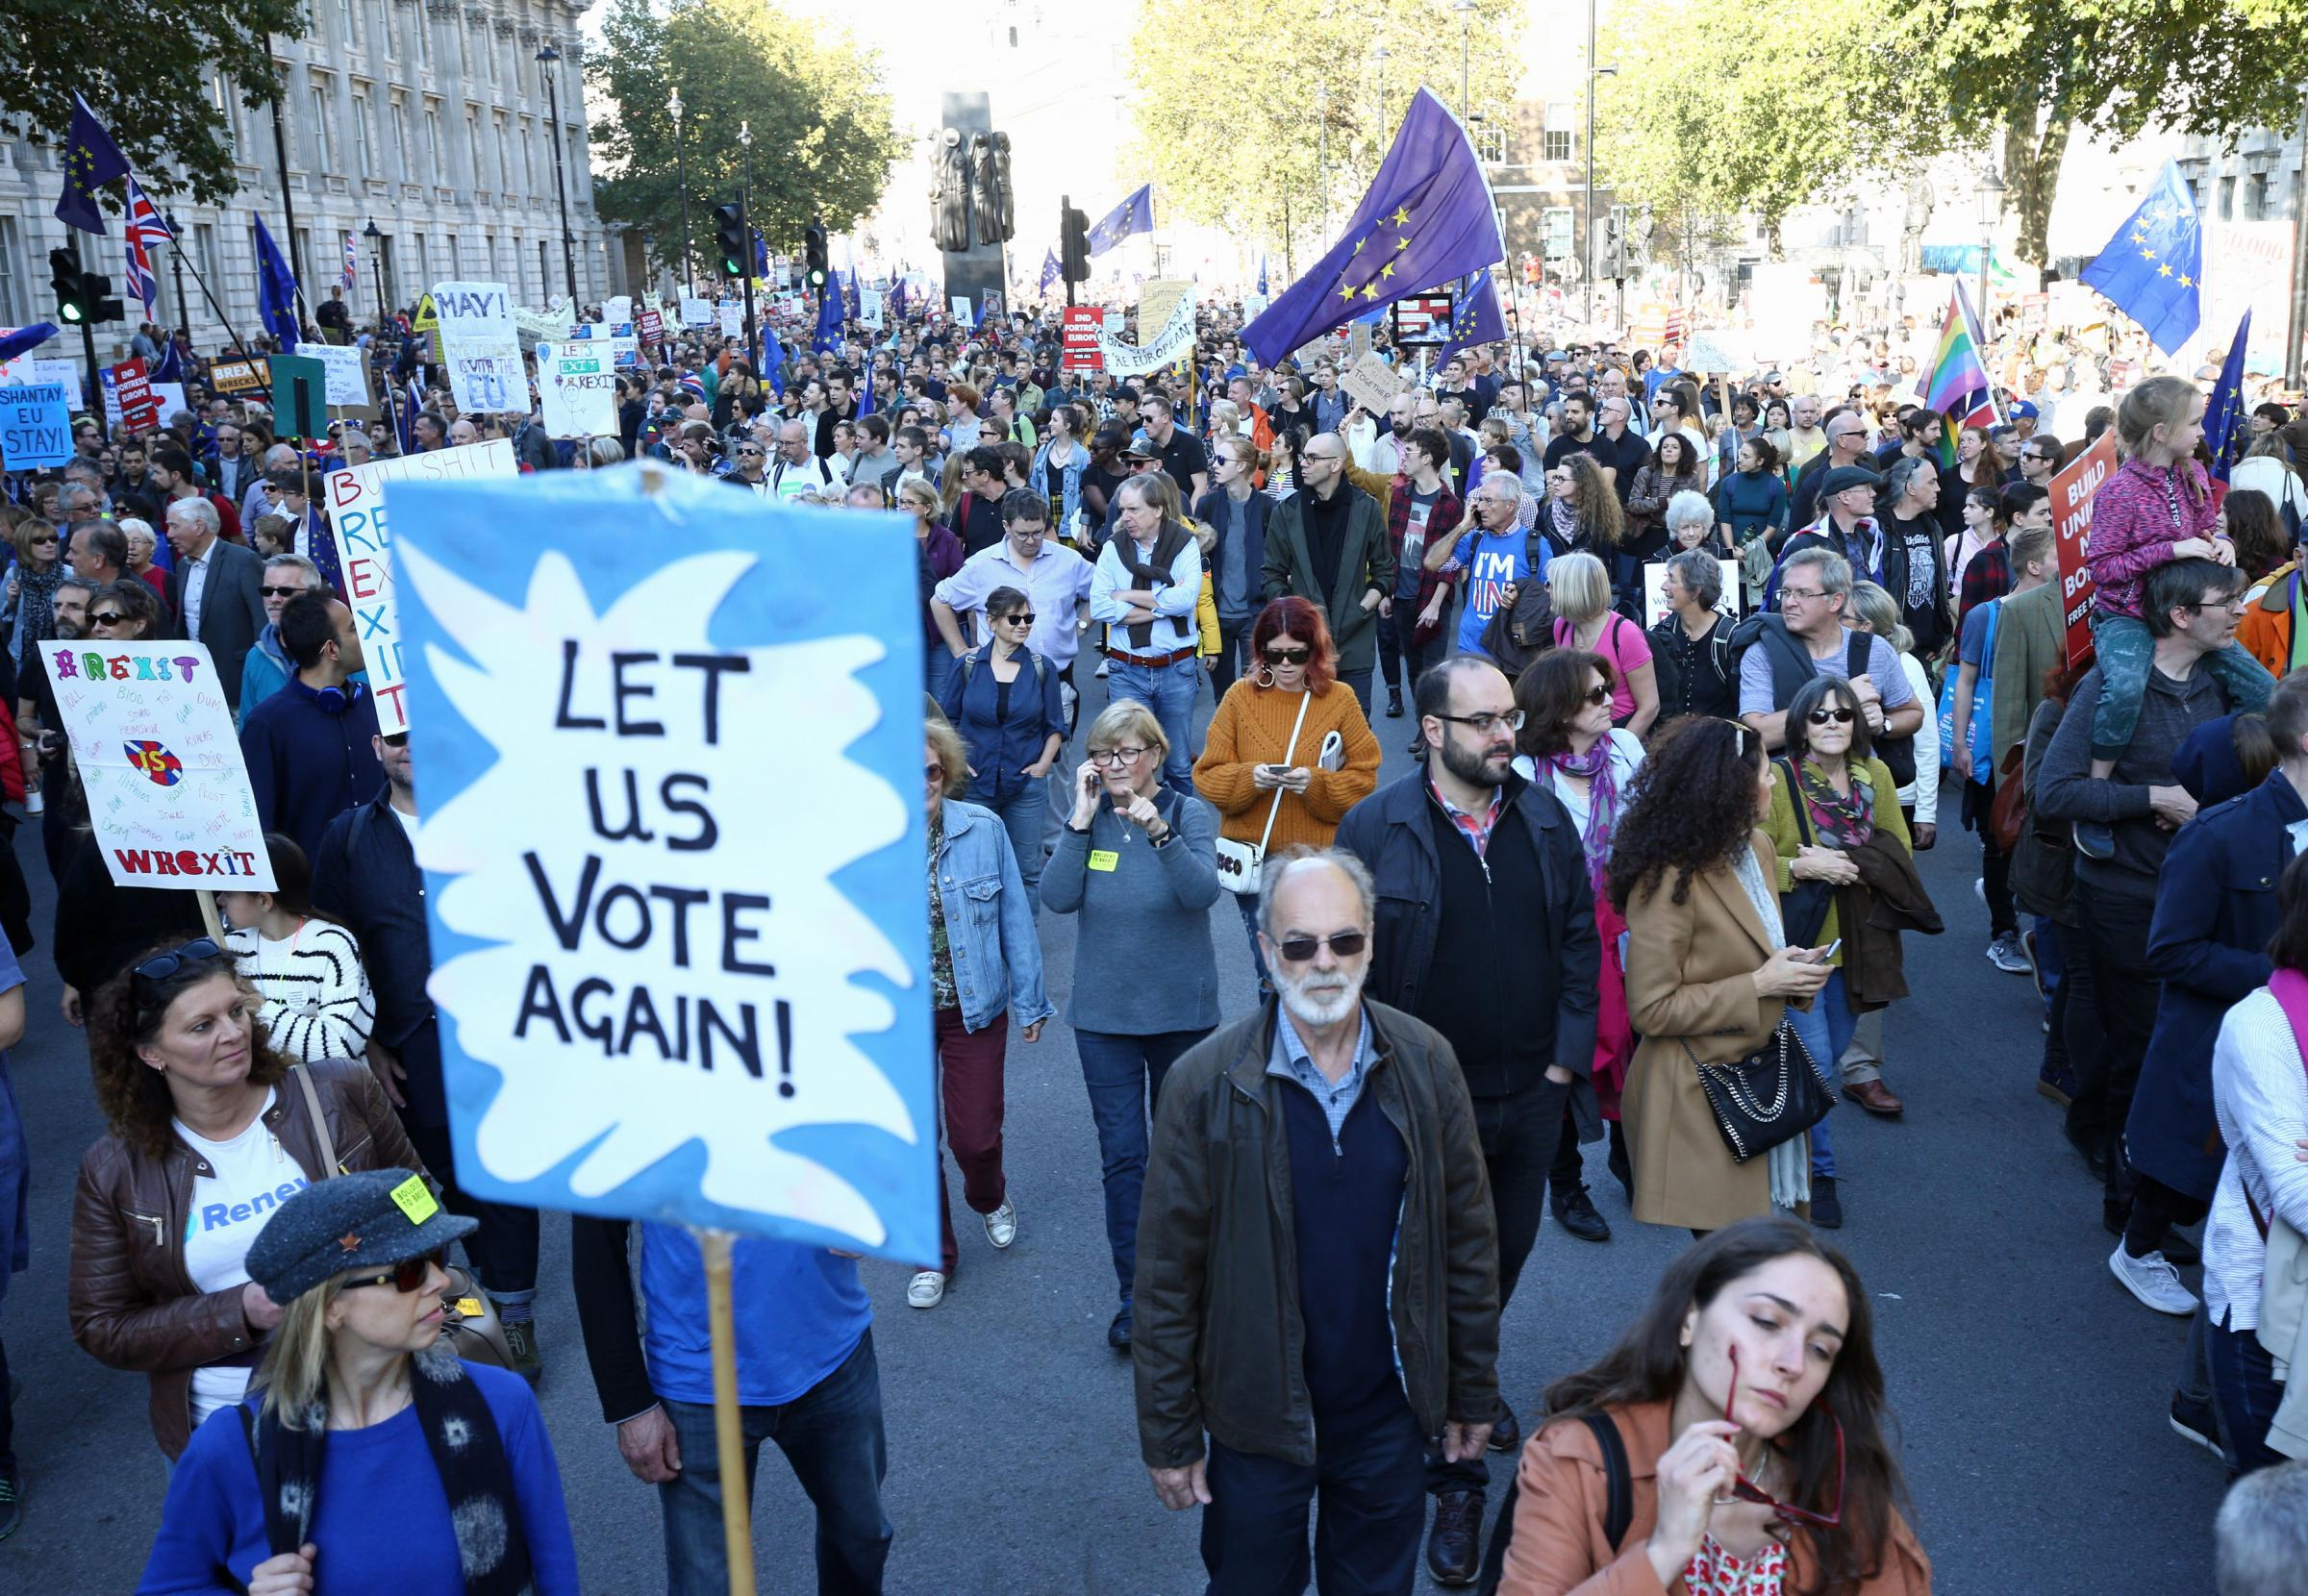 Anti-Brexit campaigners take part in the People's Vote March for the Future in London, a march and rally in support of a second EU referendum. PRESS ASSOCIATION Photo. Picture date: Saturday October 20, 2018. See PA story POLITICS Brexit Protest. Phot